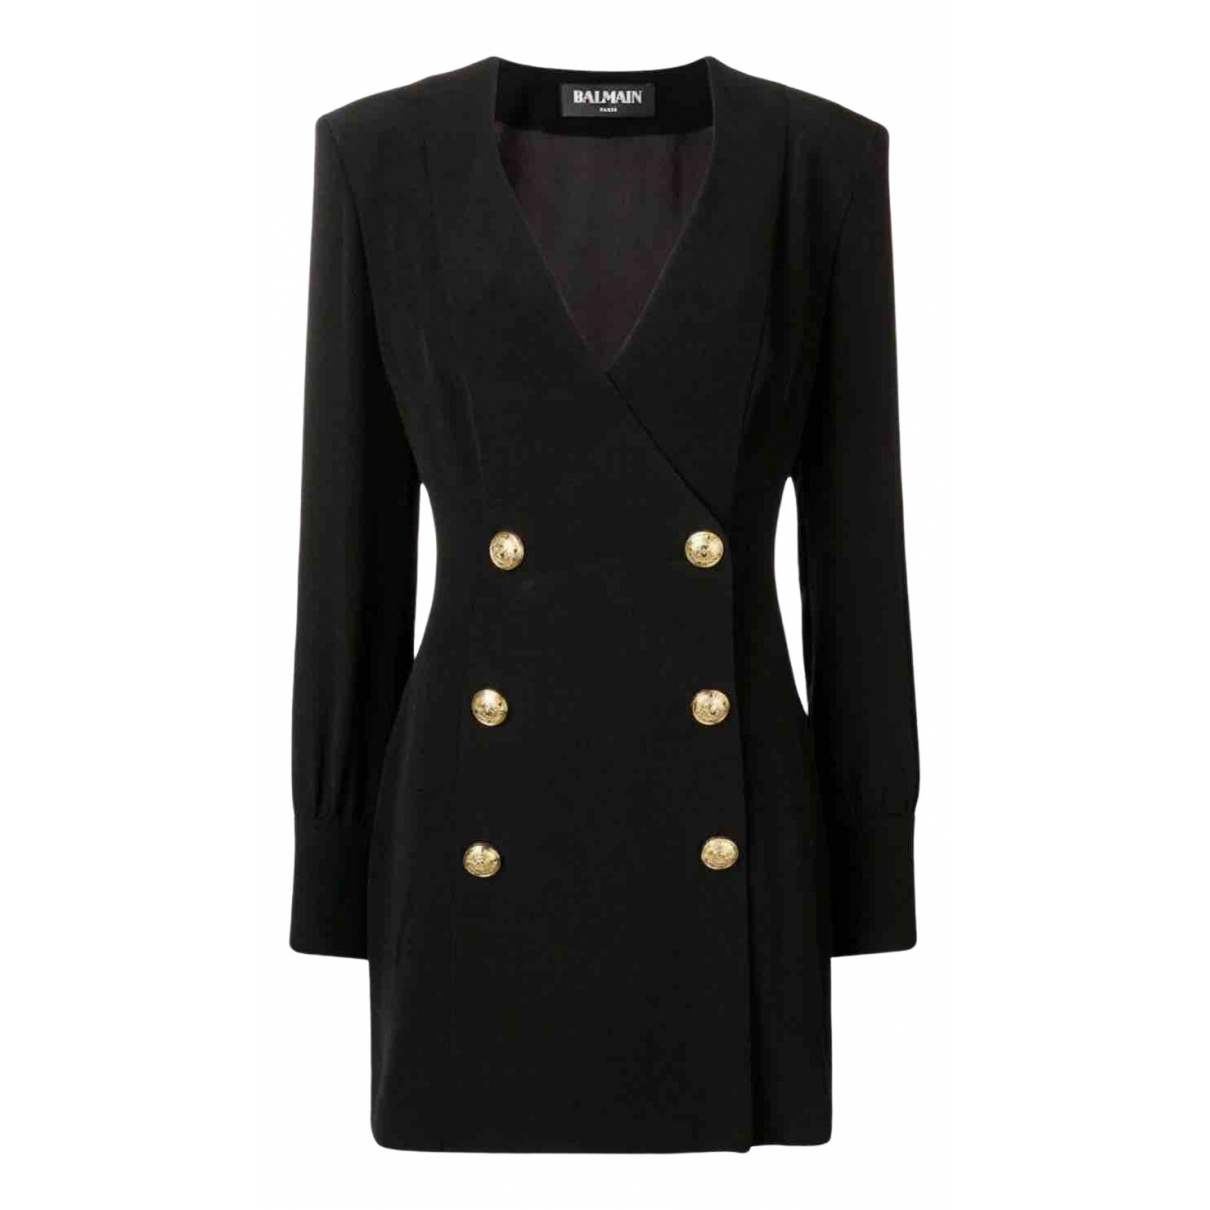 Balmain N Black dress for Women 38 FR